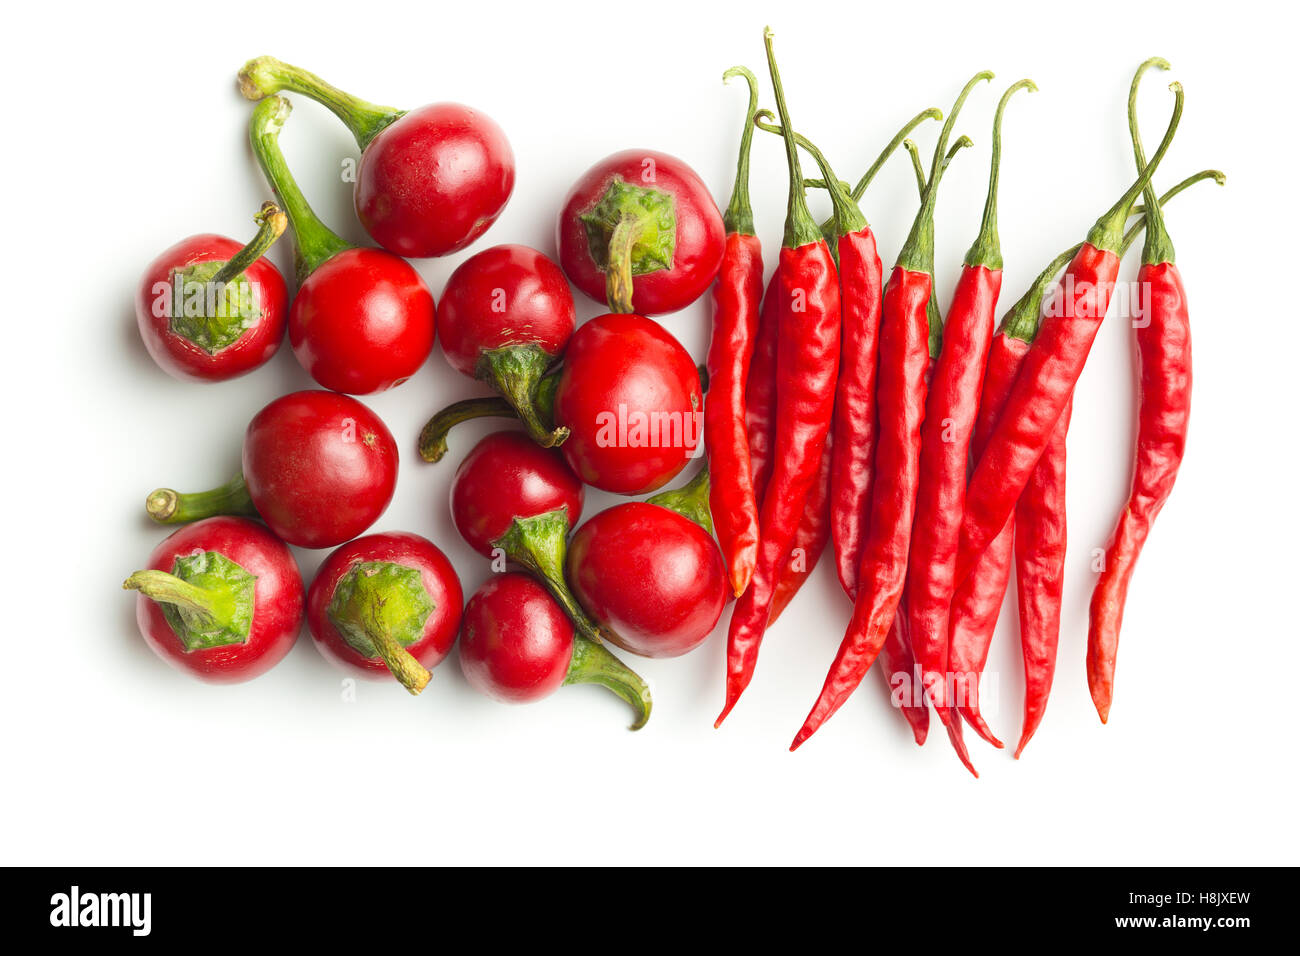 Round red chili peppers isolated on white background. - Stock Image